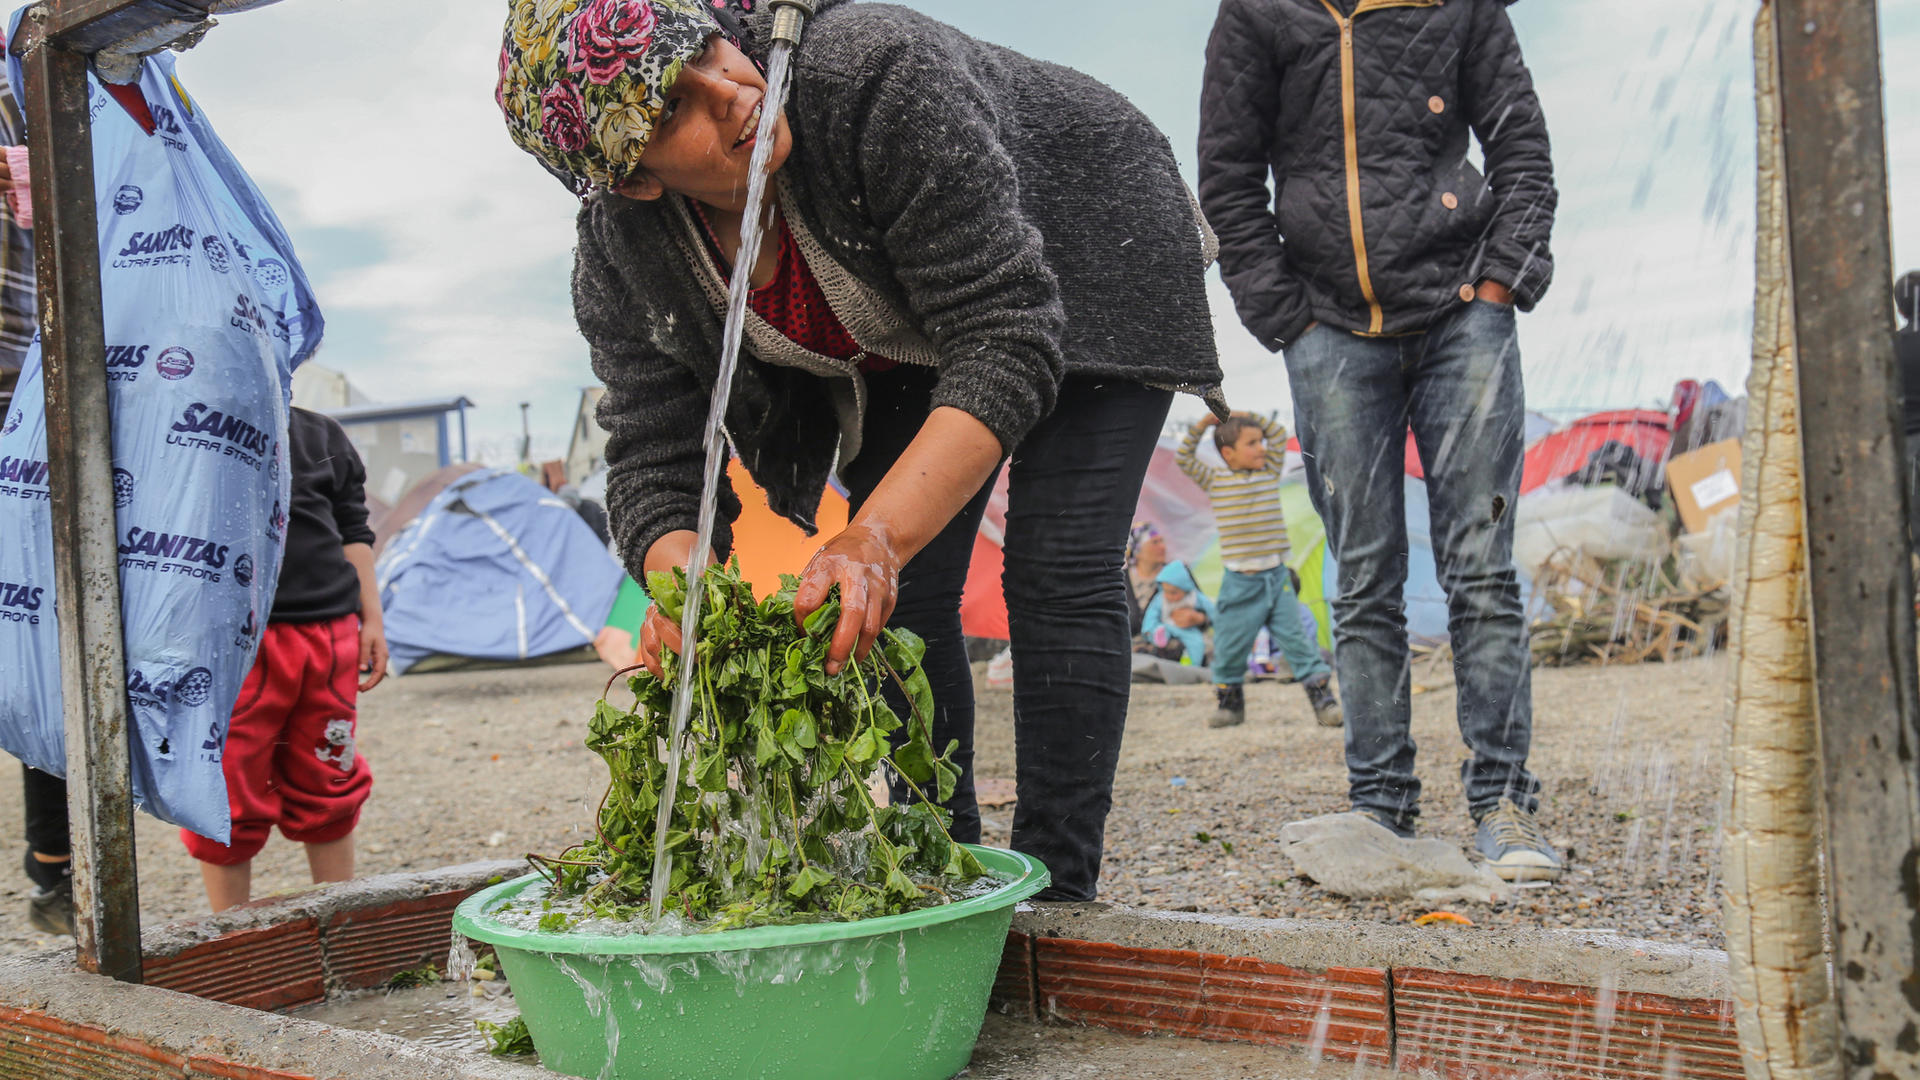 A woman washes vegatables at an IRC-installed water tap in Idomeni, Greece